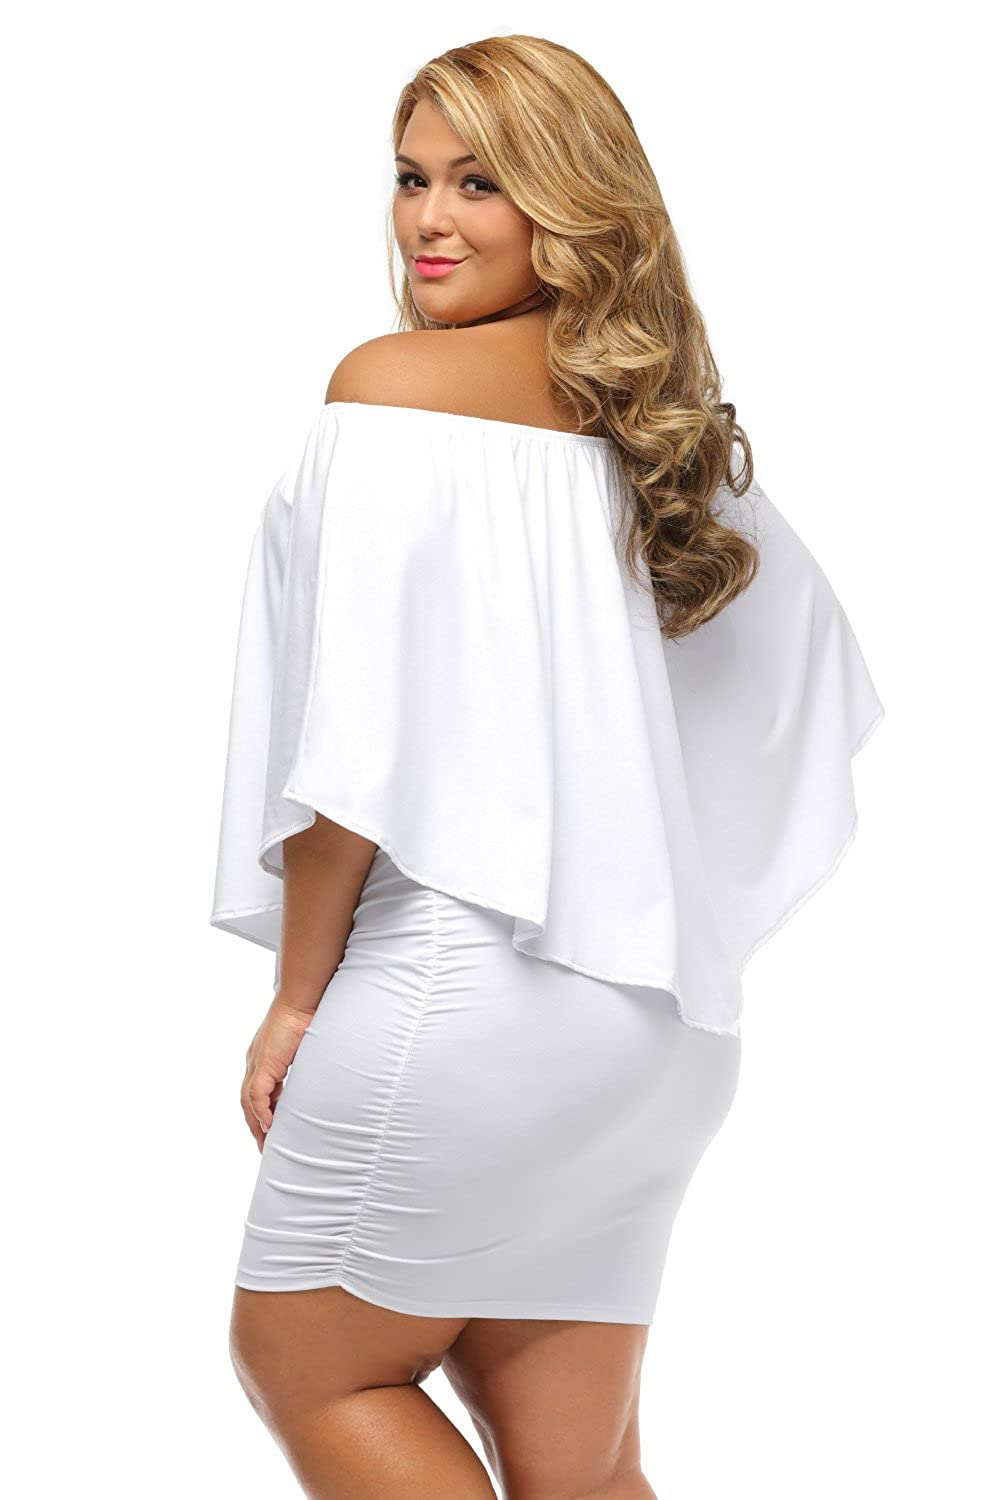 25f92115806 LUCKLOVELL Women Sexy Plus Size Multiple Dressing Layered White Mini Dress  at Amazon Women s Clothing store